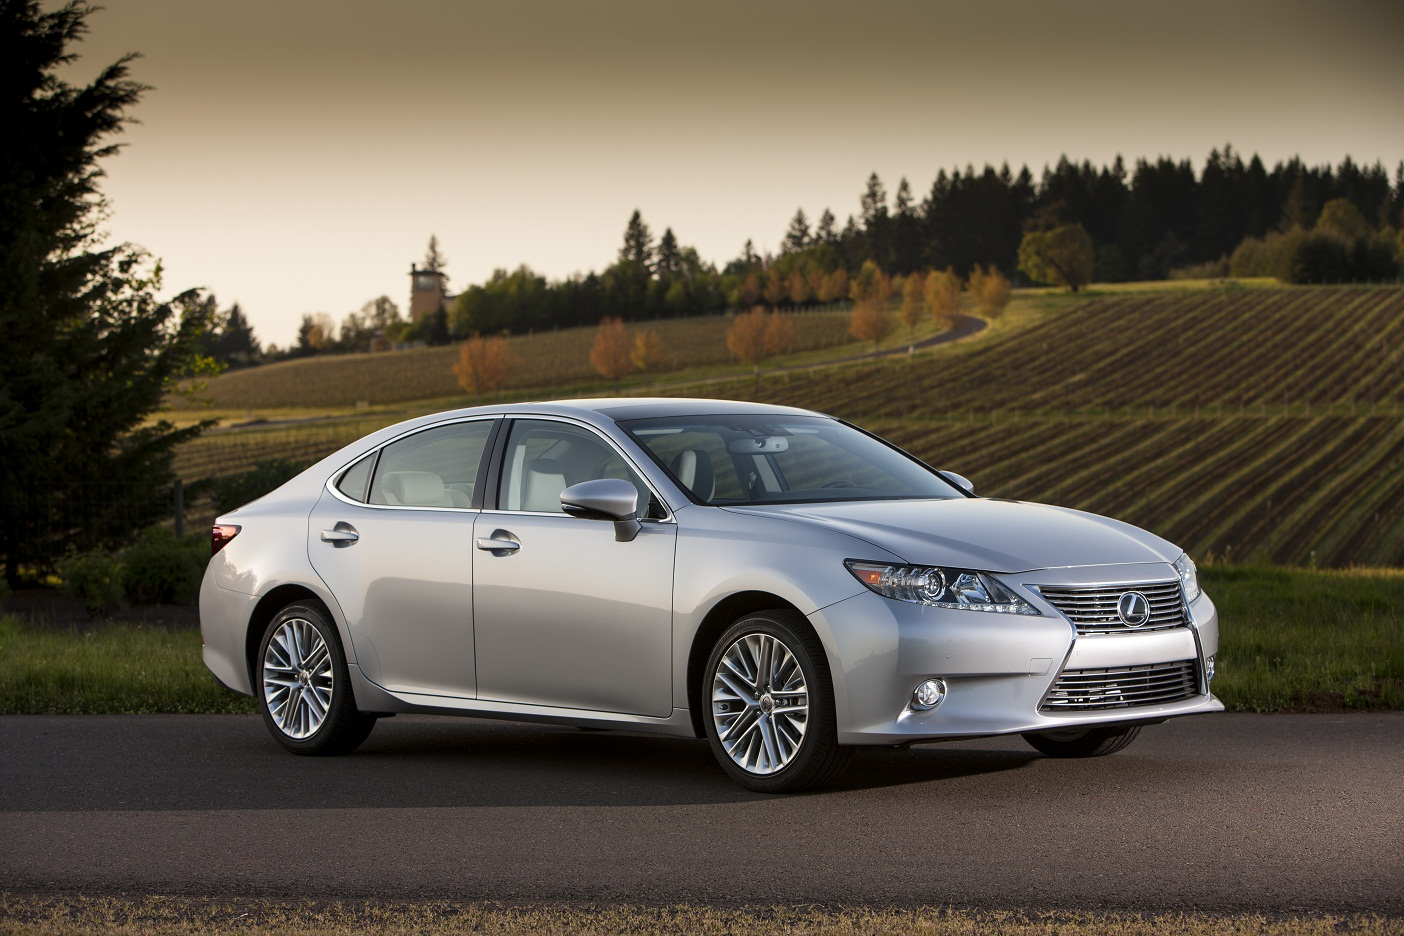 First Drive: 2013 Lexus ES 350 and ES 300h Hybrid